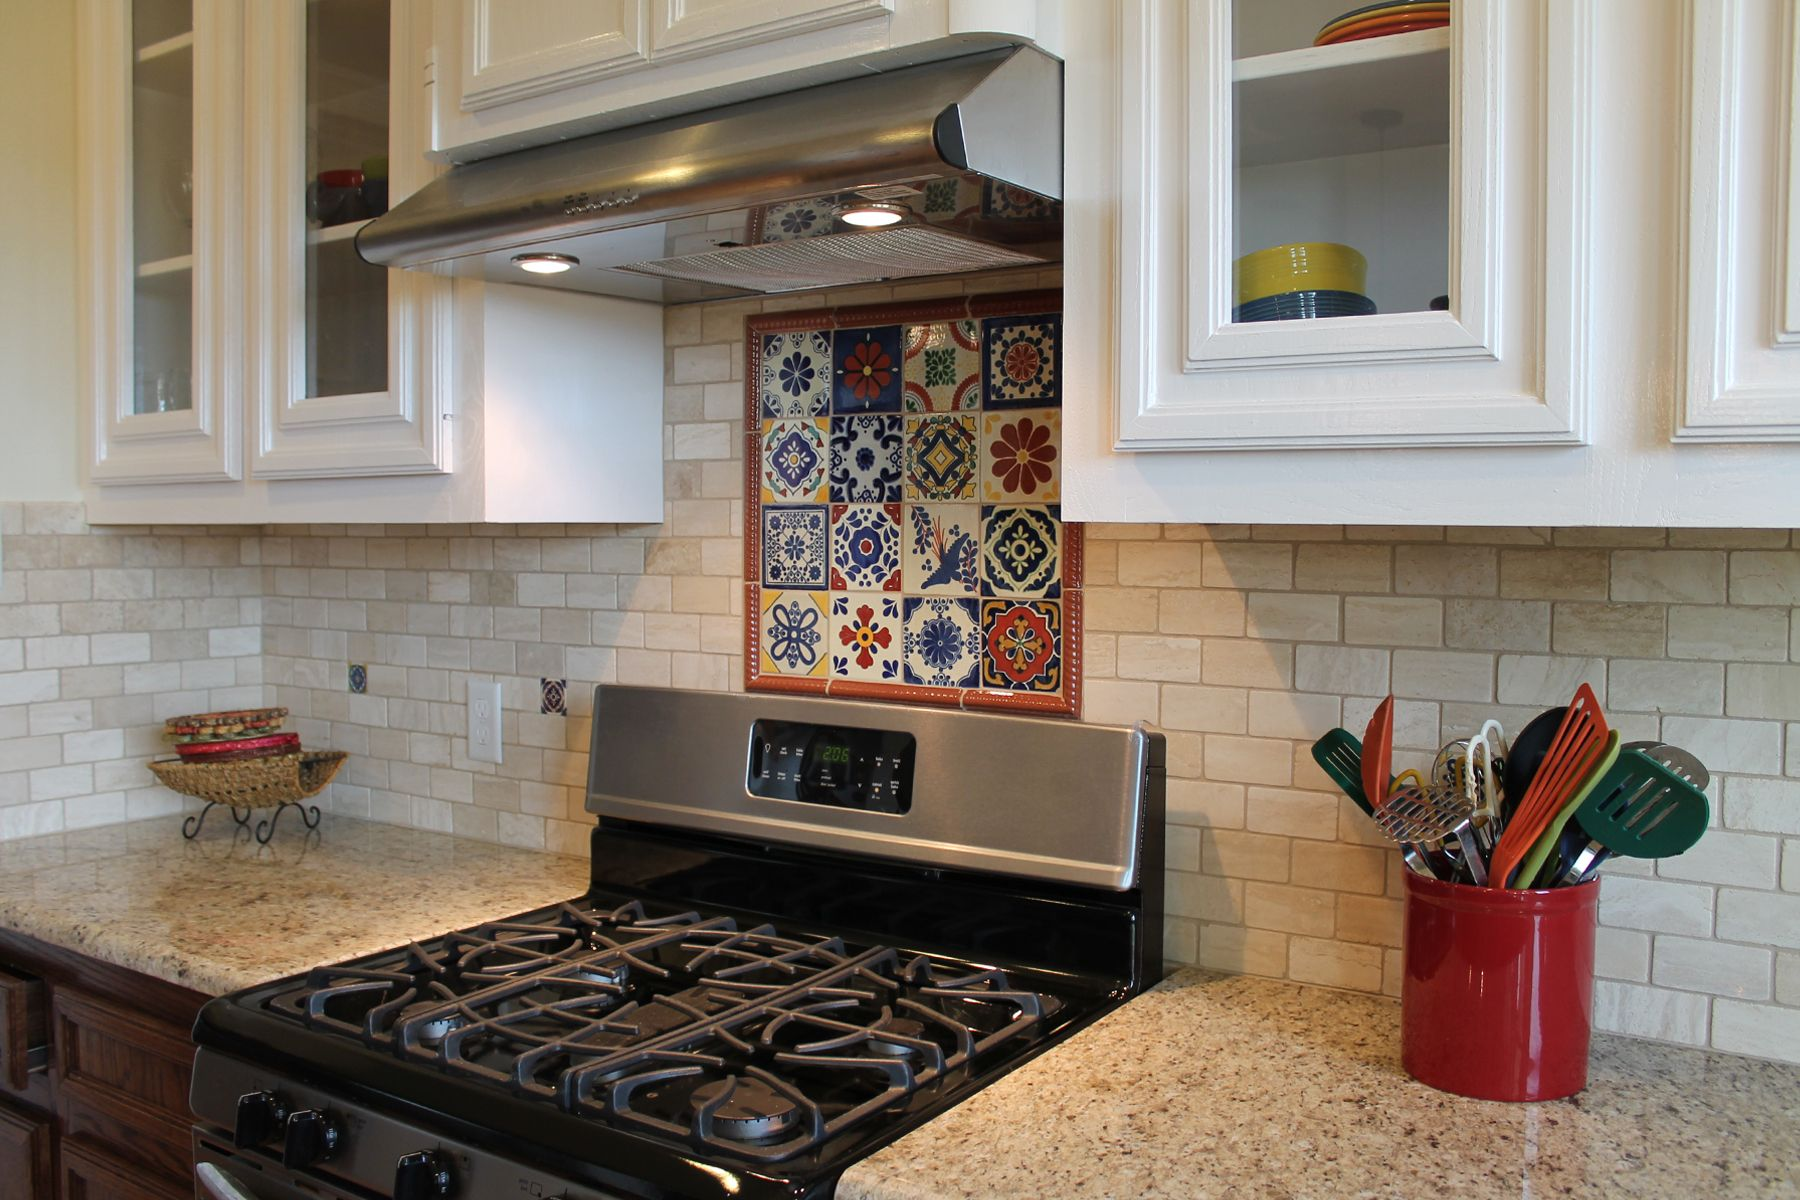 - Spanish-style #kitchen Backsplash With Talavera Tile And